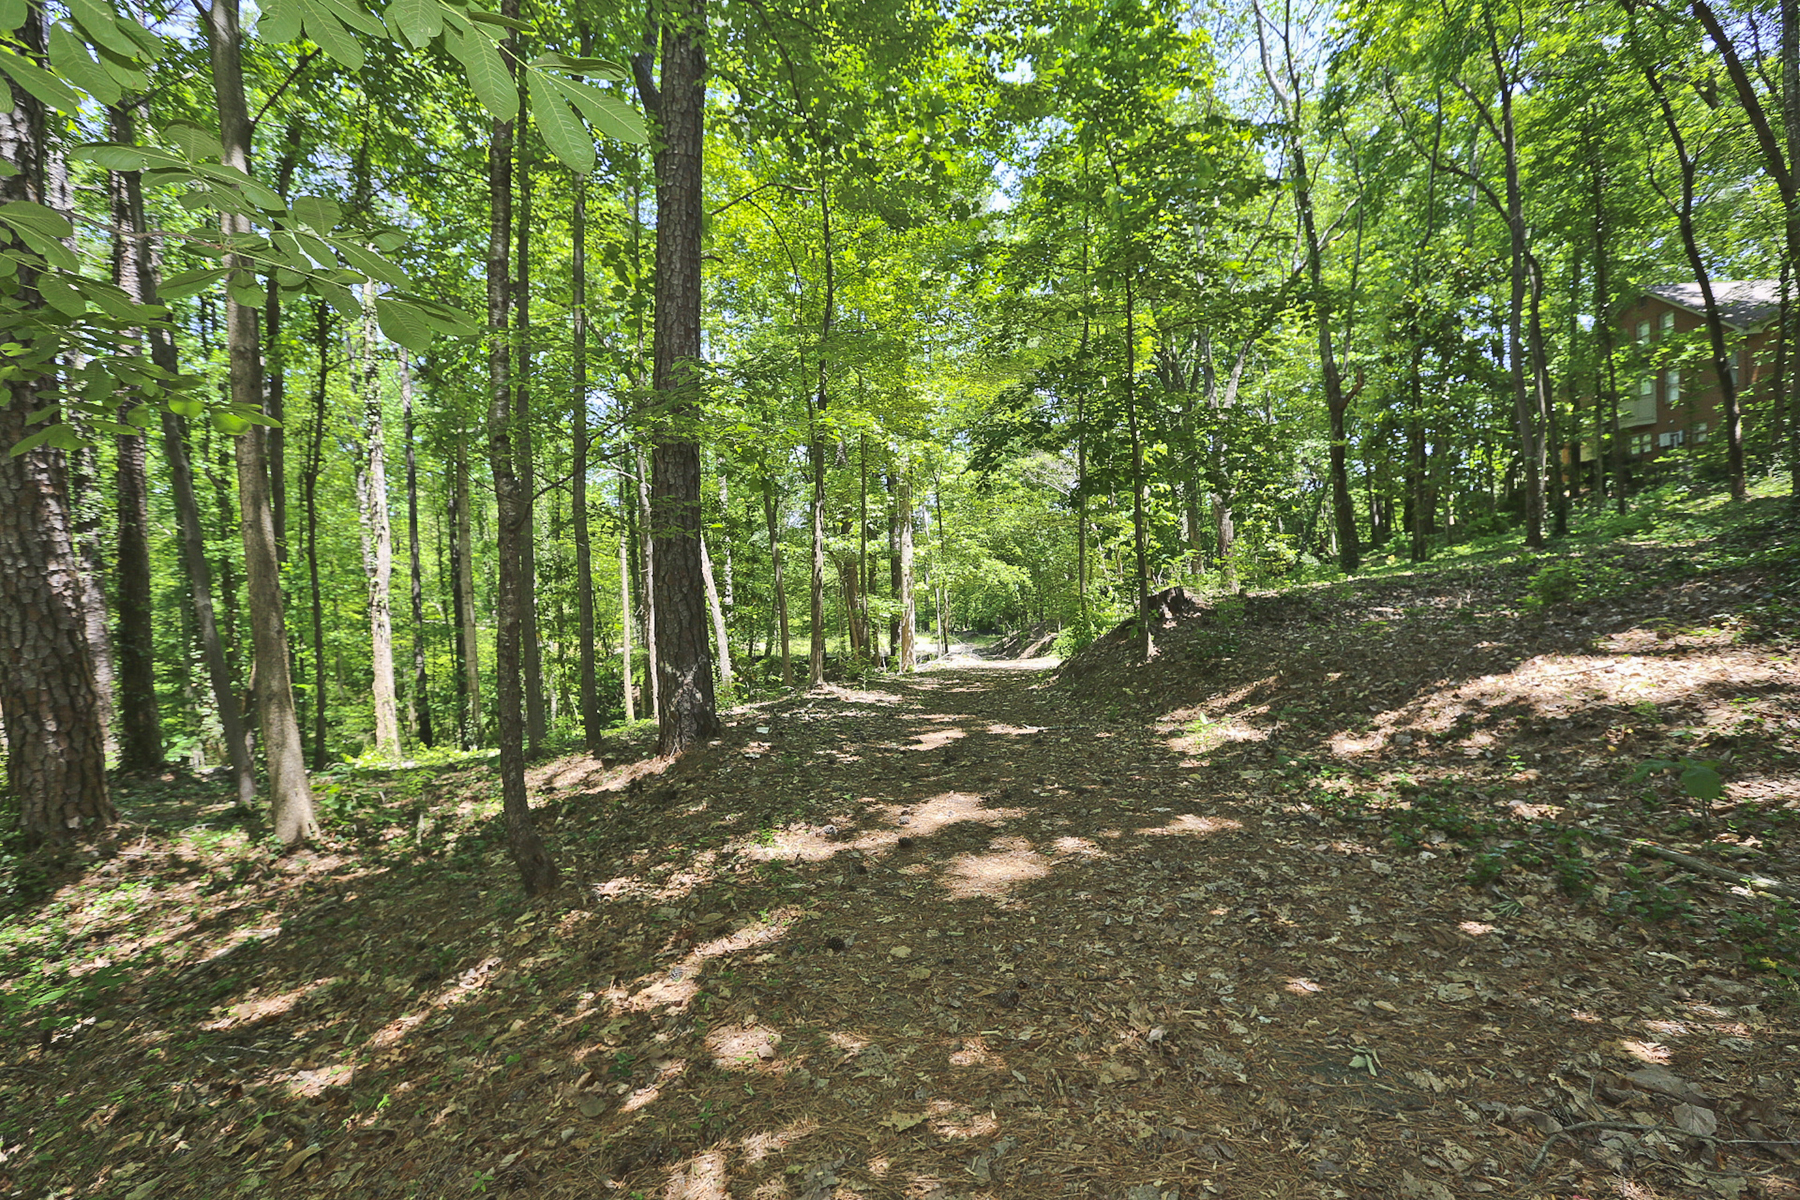 Land for Sale at Beautiful Wooded 3.4 Acre Homesite In Fantastic Close-in Sandy Springs Location 61 Burdette Road NW Sandy Springs, Georgia 30327 United States